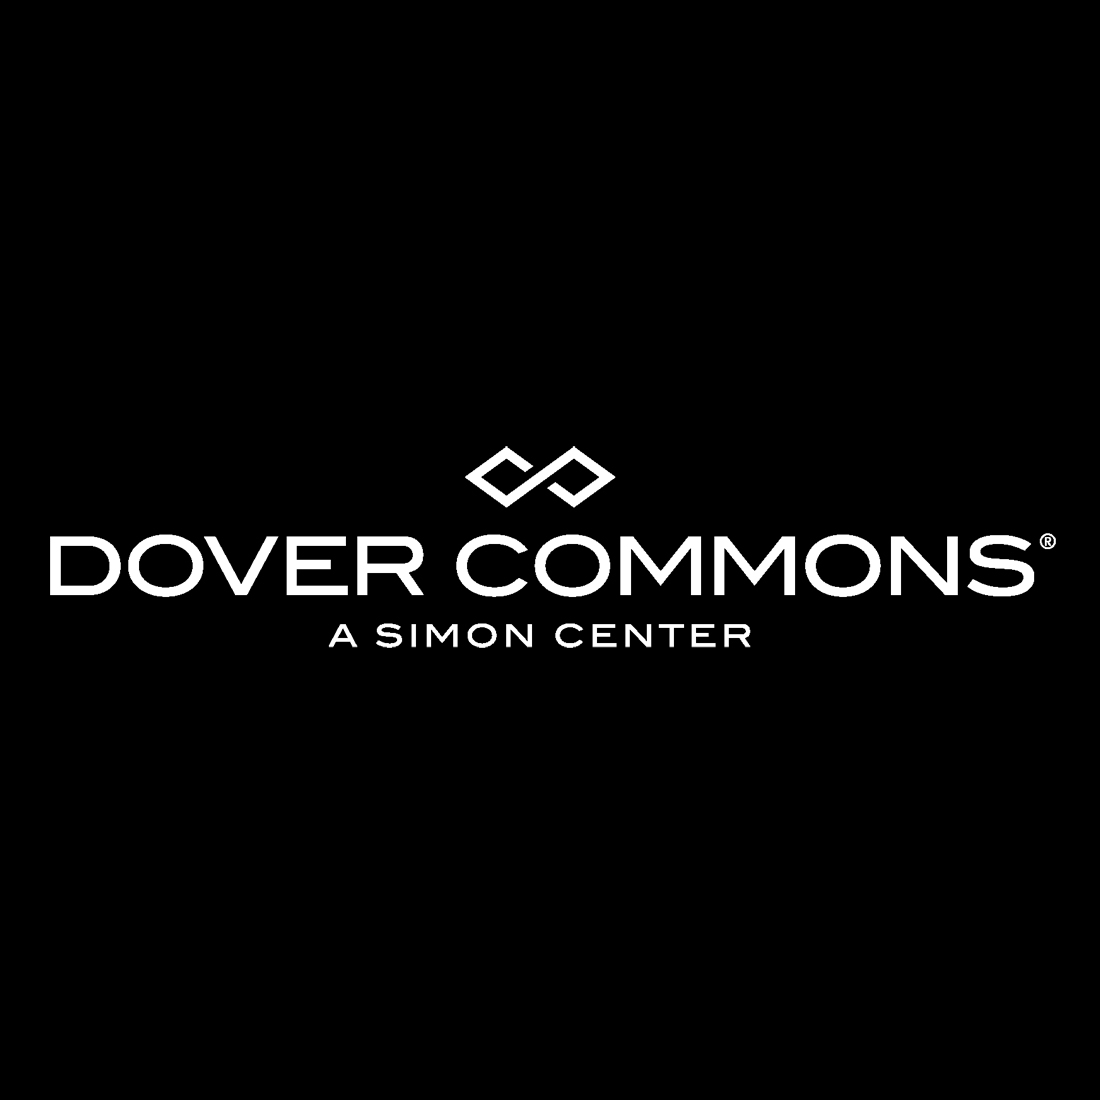 Dover Commons